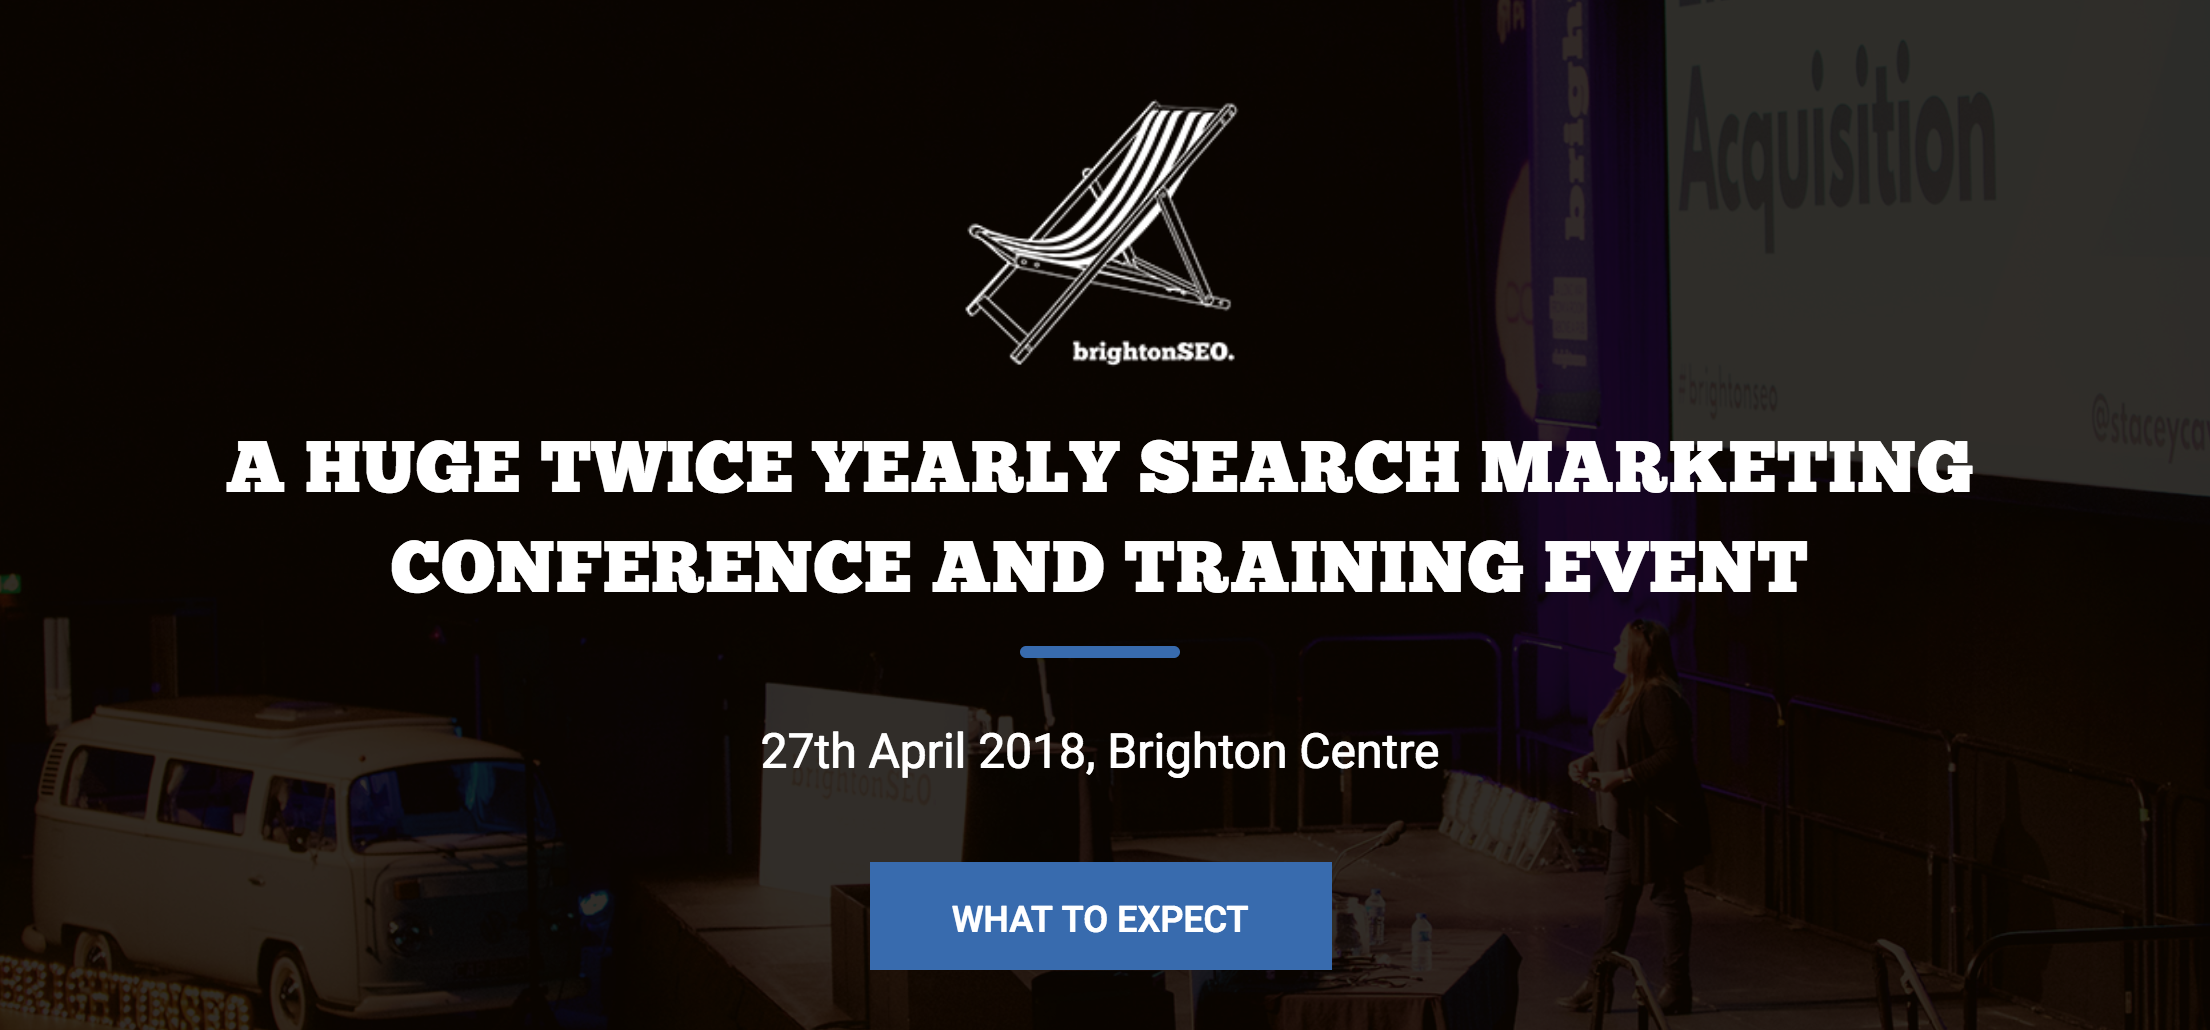 brightonseo.png